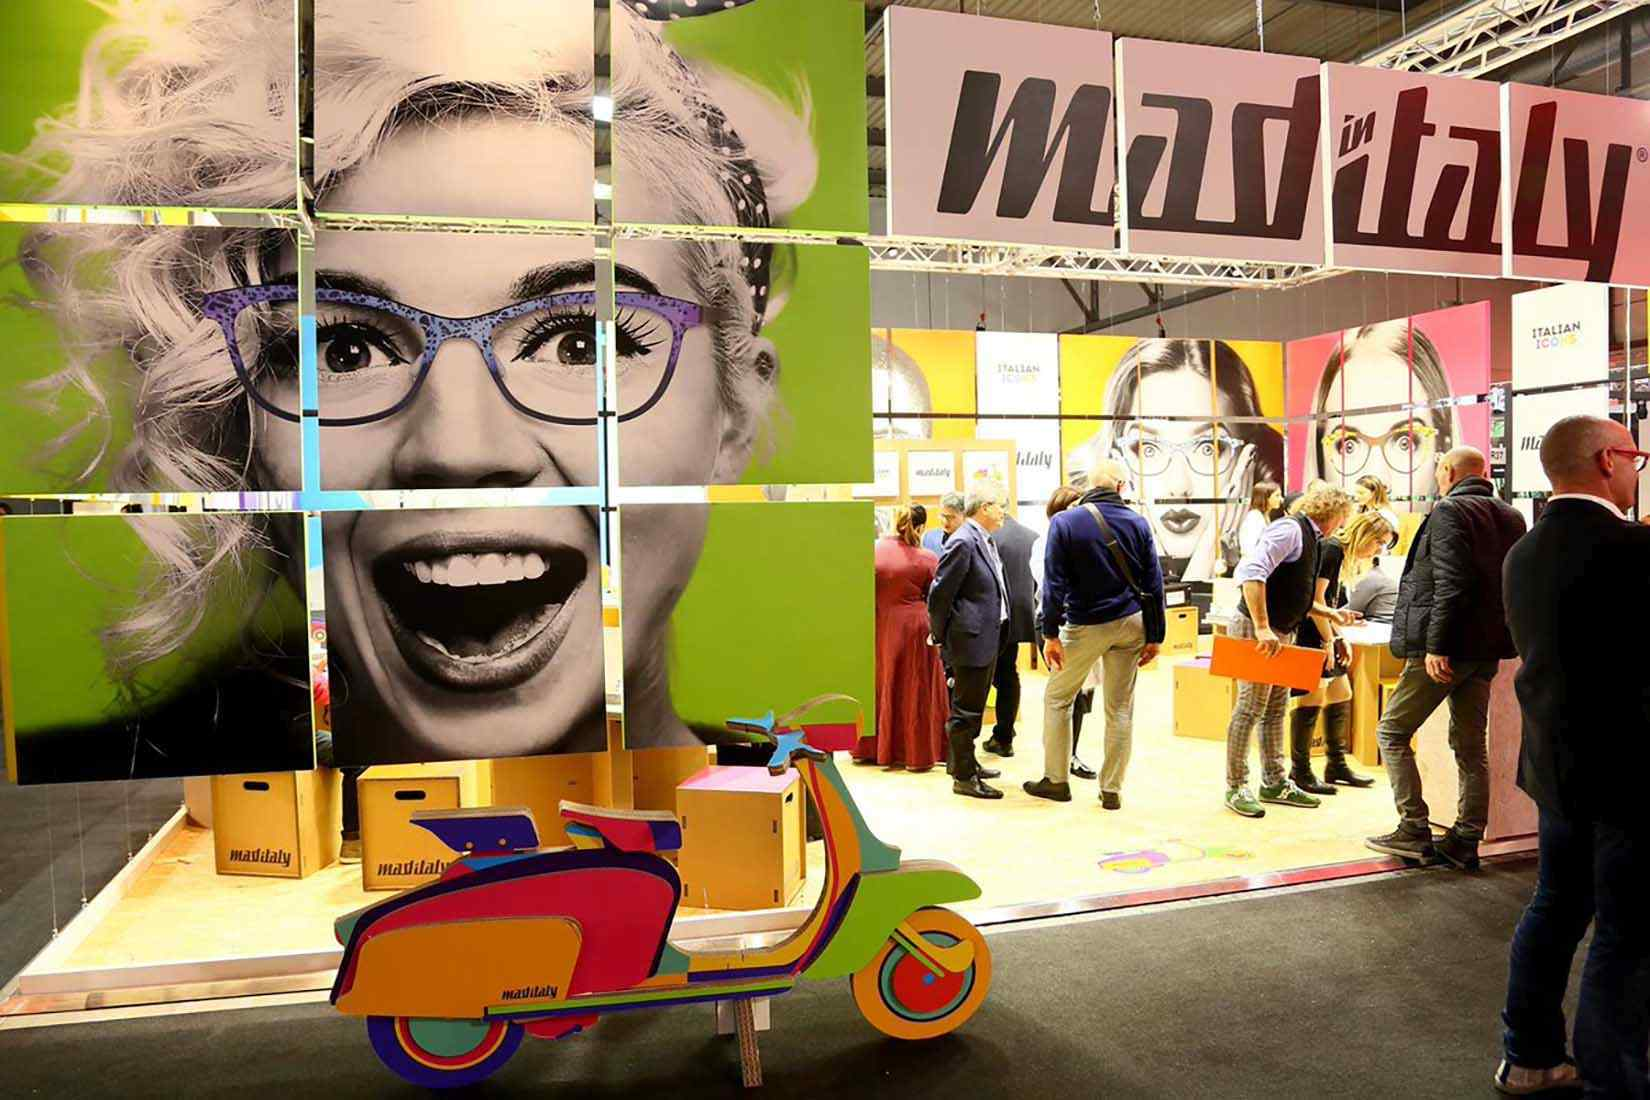 Mad-In-Italy spectacles: eyewear show